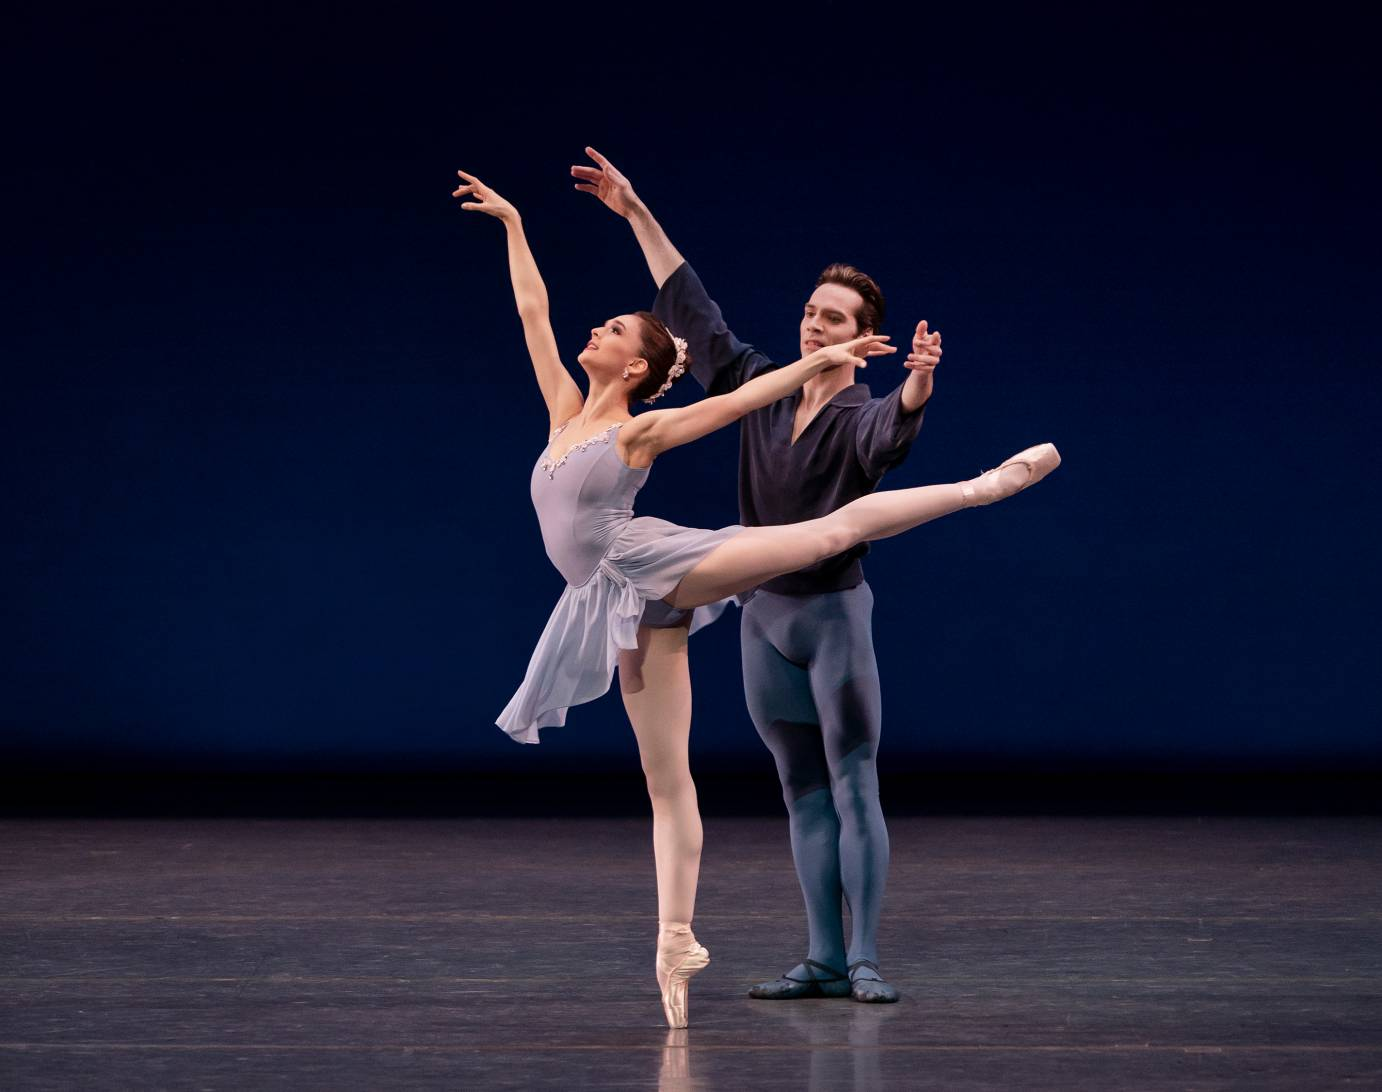 A man partners a woman in arabesque